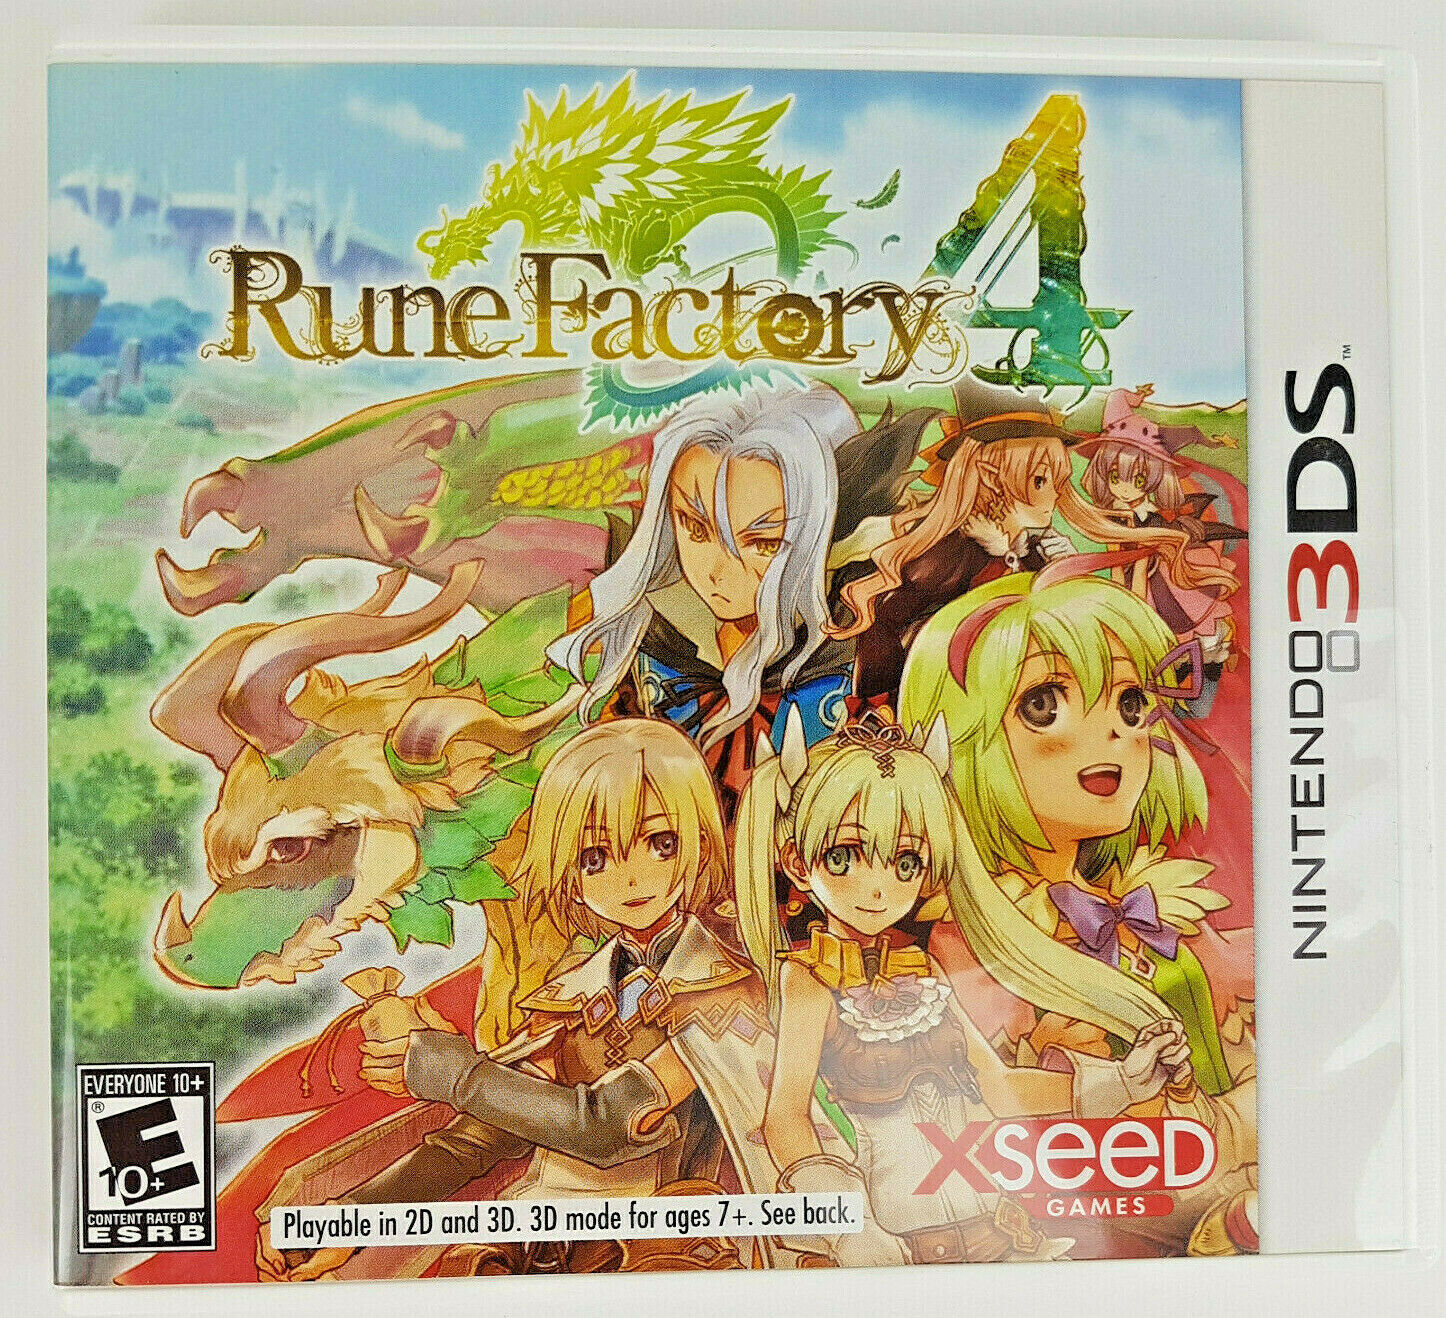 Primary image for Rune Factory 4 (Nintendo 3DS, 2013) CIB Fantasy RPG COMPLETE Anime Role Playing